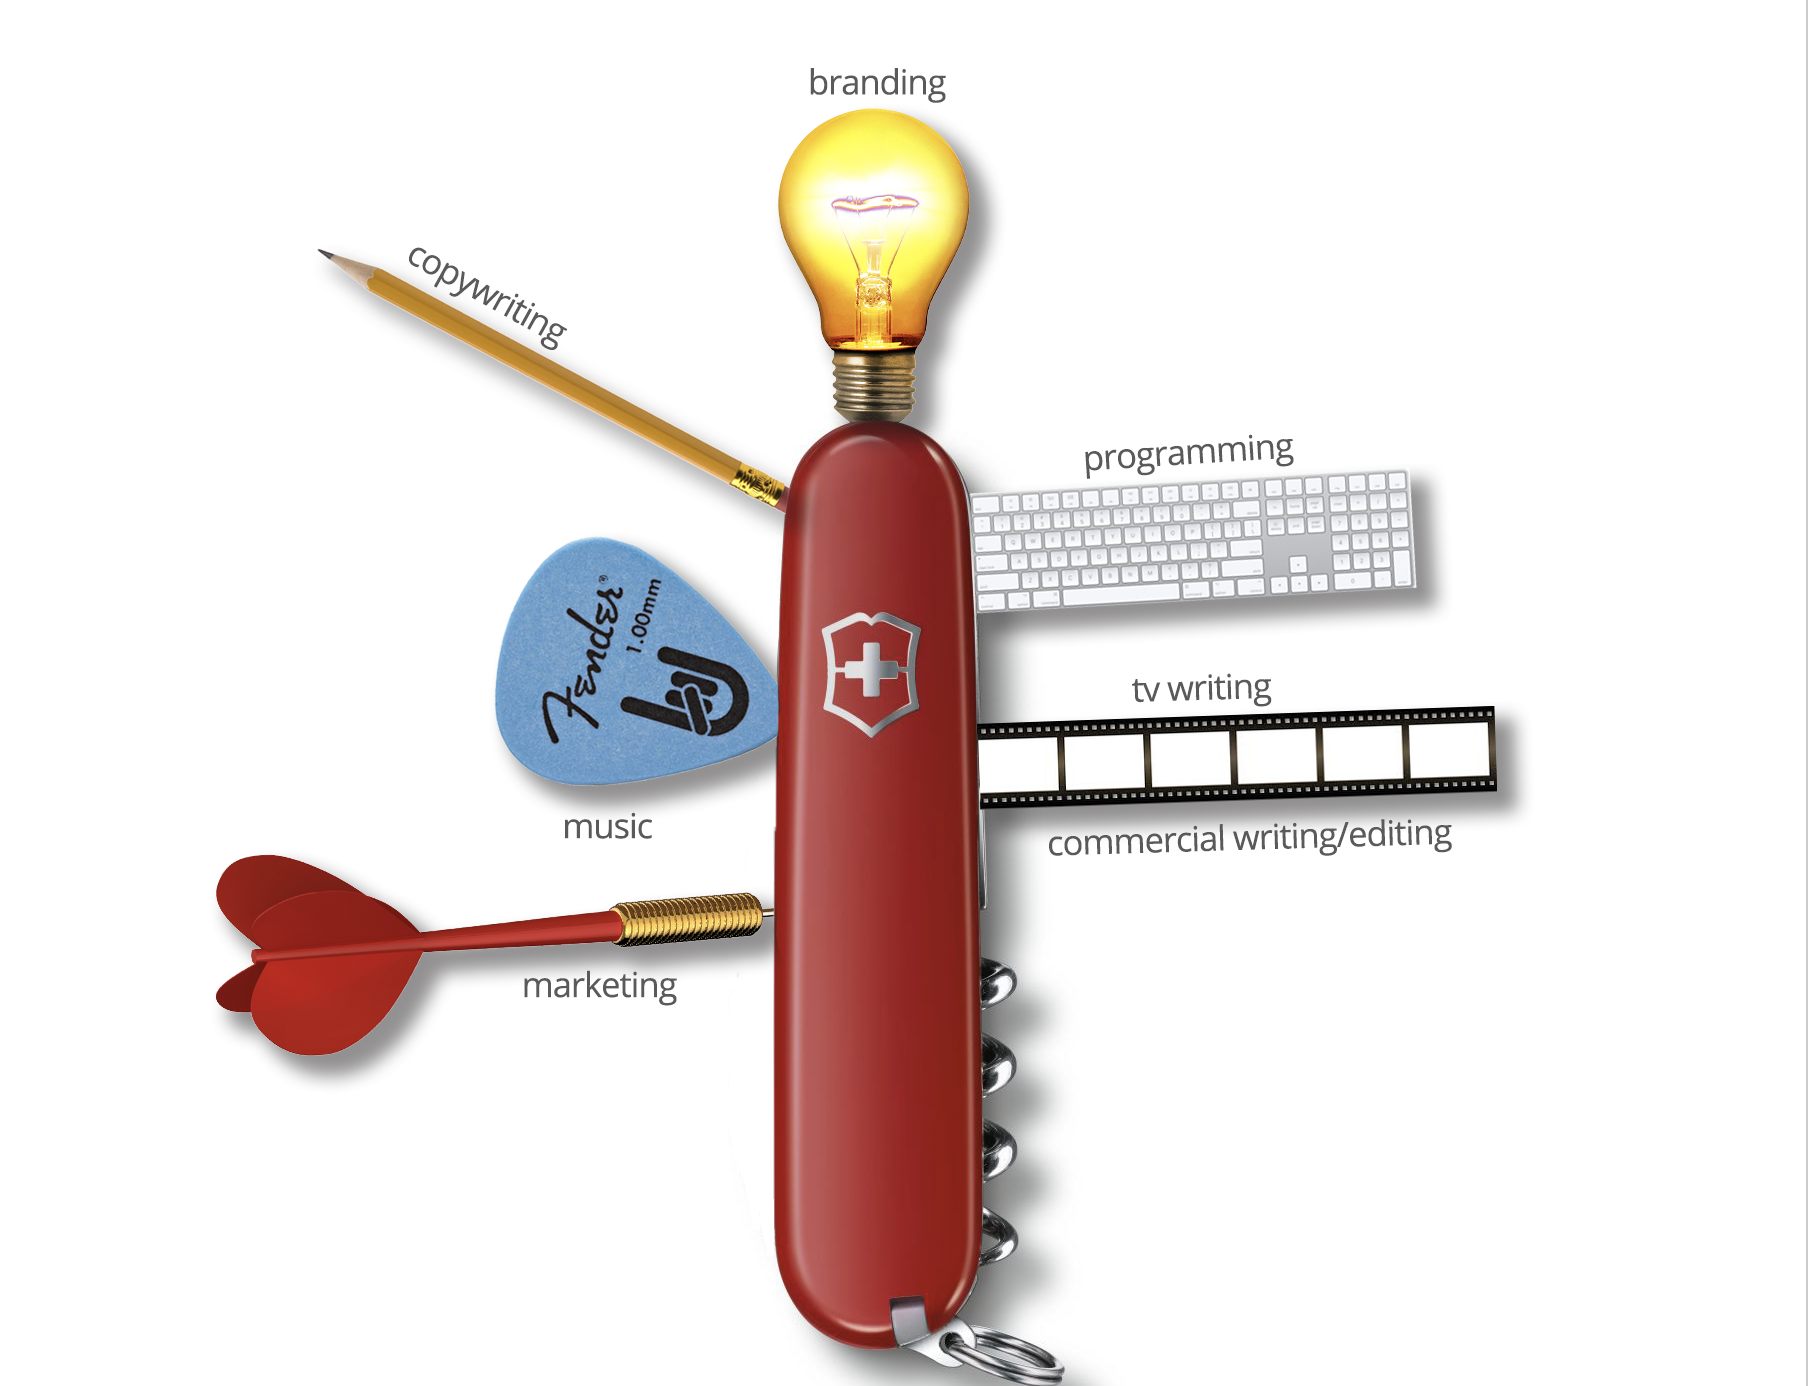 Creative Swiss Army Knife. - A multifaceted tool that offers you options in a dire situation. A replacement for a dozen others saving you space, time, money. A tool carried for functionality, versatility, and even survival in adverse situations.You can't replace chainsaw or a backhoe for a specific job, but in today's dynamic business world, where money or the precise tools you need may not be readily available, agility and dexterity can be invaluable.I created a multi-million dollar company from the ground up with no money and a shoestring marketing budget that is saving 100k+ relationships and counting.I built a completely proprietary computer system behind that business (including the industry's most complicated box choices with over 1,000 box options) from scratch.I had successes as a television writer starting with 2 top 10 finishes in the two biggest Hollywood writing contests in 1 year that transitioned into a successful copywriting career.Agency background with dozen+ creative/branding campaigns, and 100% success rate for pitches at my most recent advertising firm.I did a piston replacement on a motorcycle at age 13 with nothing more than a owners manual, and built 2 houses from the studs with no experience, and have played guitar since I was 4.I'll design you a wedding dress if you give me a chance.Here's the downside. I hate spiders - I know that's not a manly thing to say, but I do. I hate them. I can handle blood, I take boxing lessons, I'm a guy's guy (used to remodel houses), but no spiders. I saw Charlotte's Web as a child and all I could think was, will someone get some bug spray and end this charade. Even if you were to put a cute over sized baseball hat on a spider, give him the voice of the puppy from the fabric softener commercials, and put him in some kind of narrative where he gets picked last in a kickball game and teased by all the other mean spiders, I would still mush his ass with a Kleenex (attached to a long stick (attached to an even lon